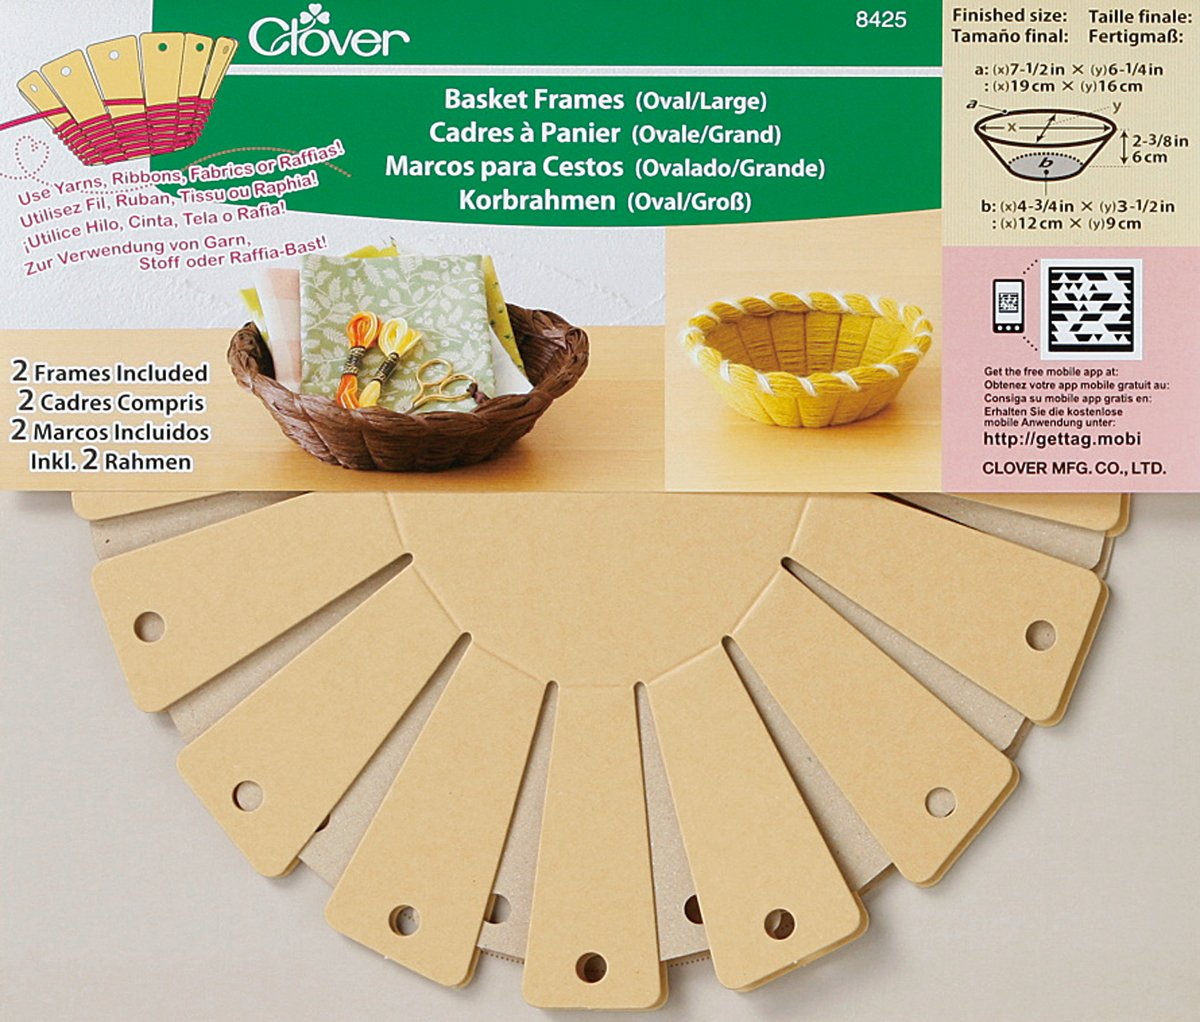 Clover 8425 2-Piece 6-1/4-Inch by 7-1/2-Inch by 2-3/8-Inch Basket Frames, Large, Oval